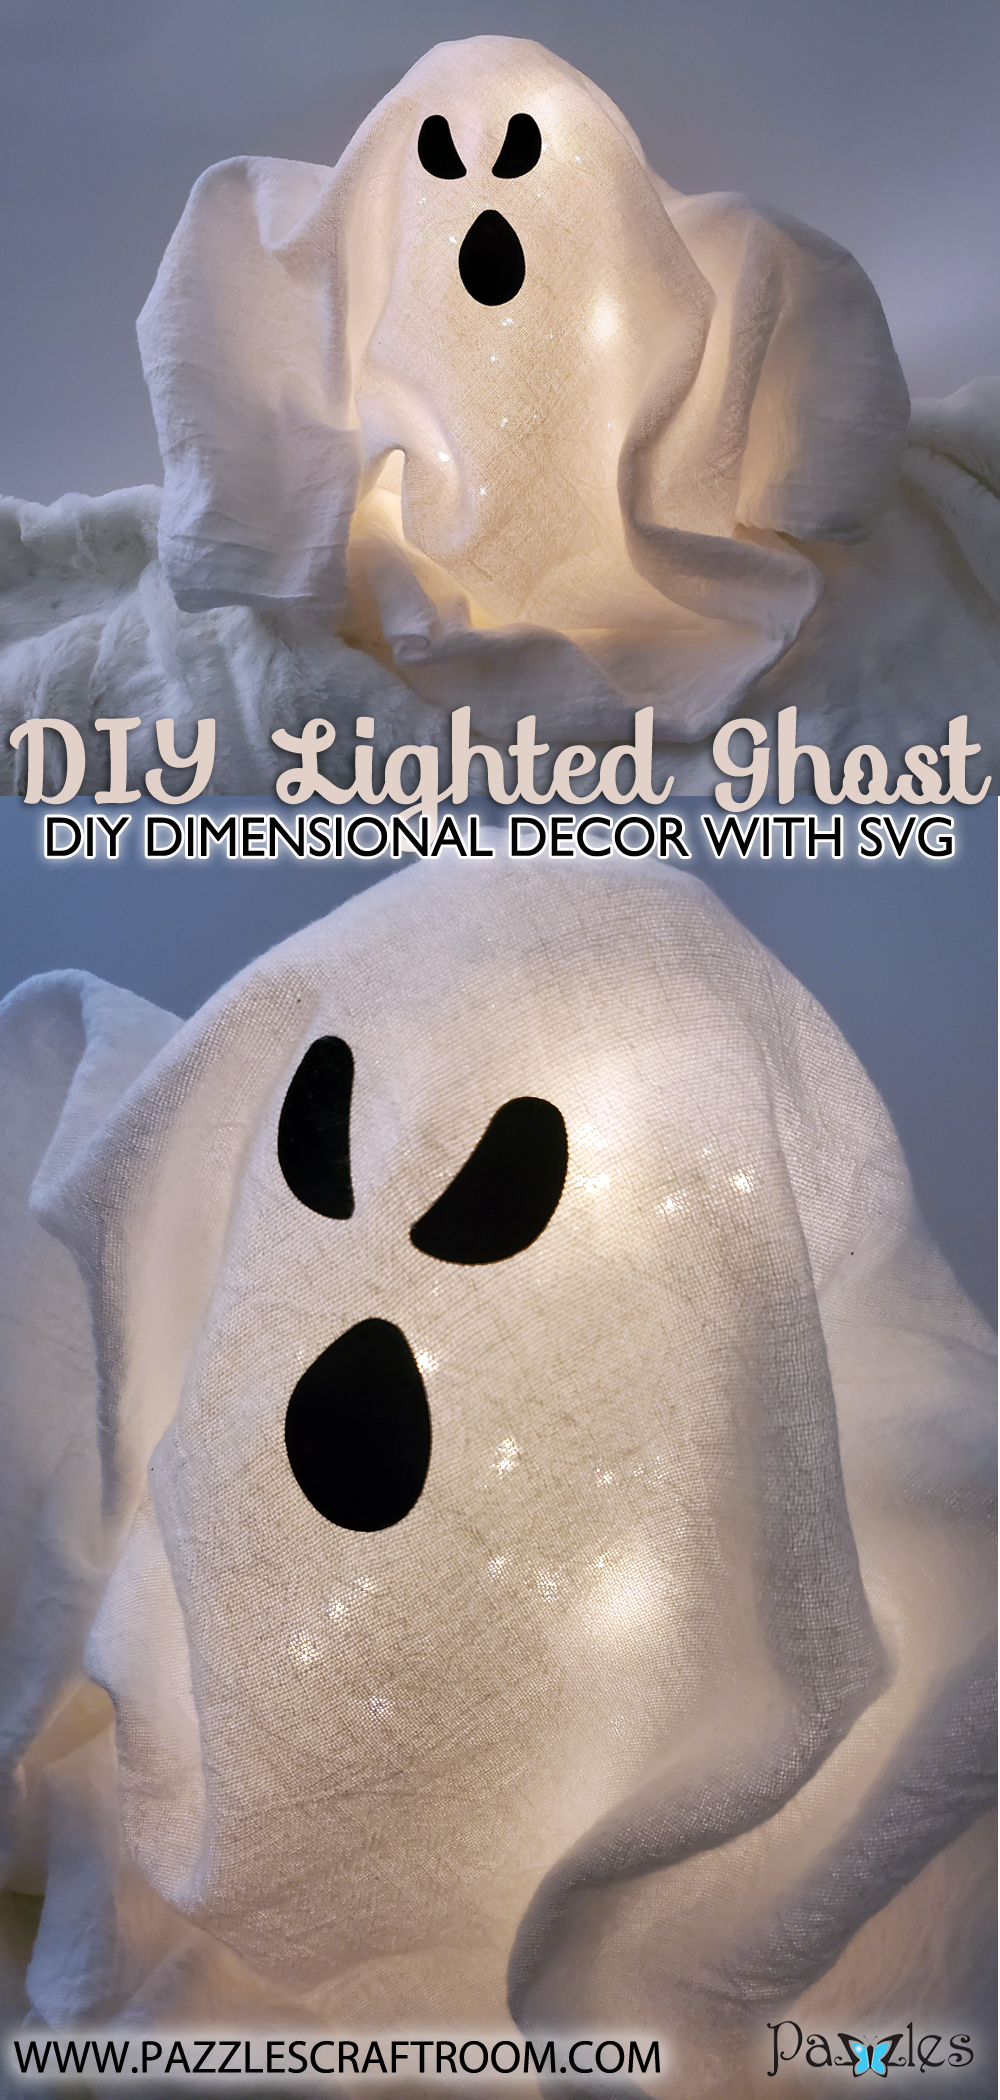 Pazzles DIY lighted ghost decor with instant SVG download. Compatible with all major electronic cutters including Pazzles Inspiration, Cricut, and Silhouette Cameo. Design by Renee Smart.